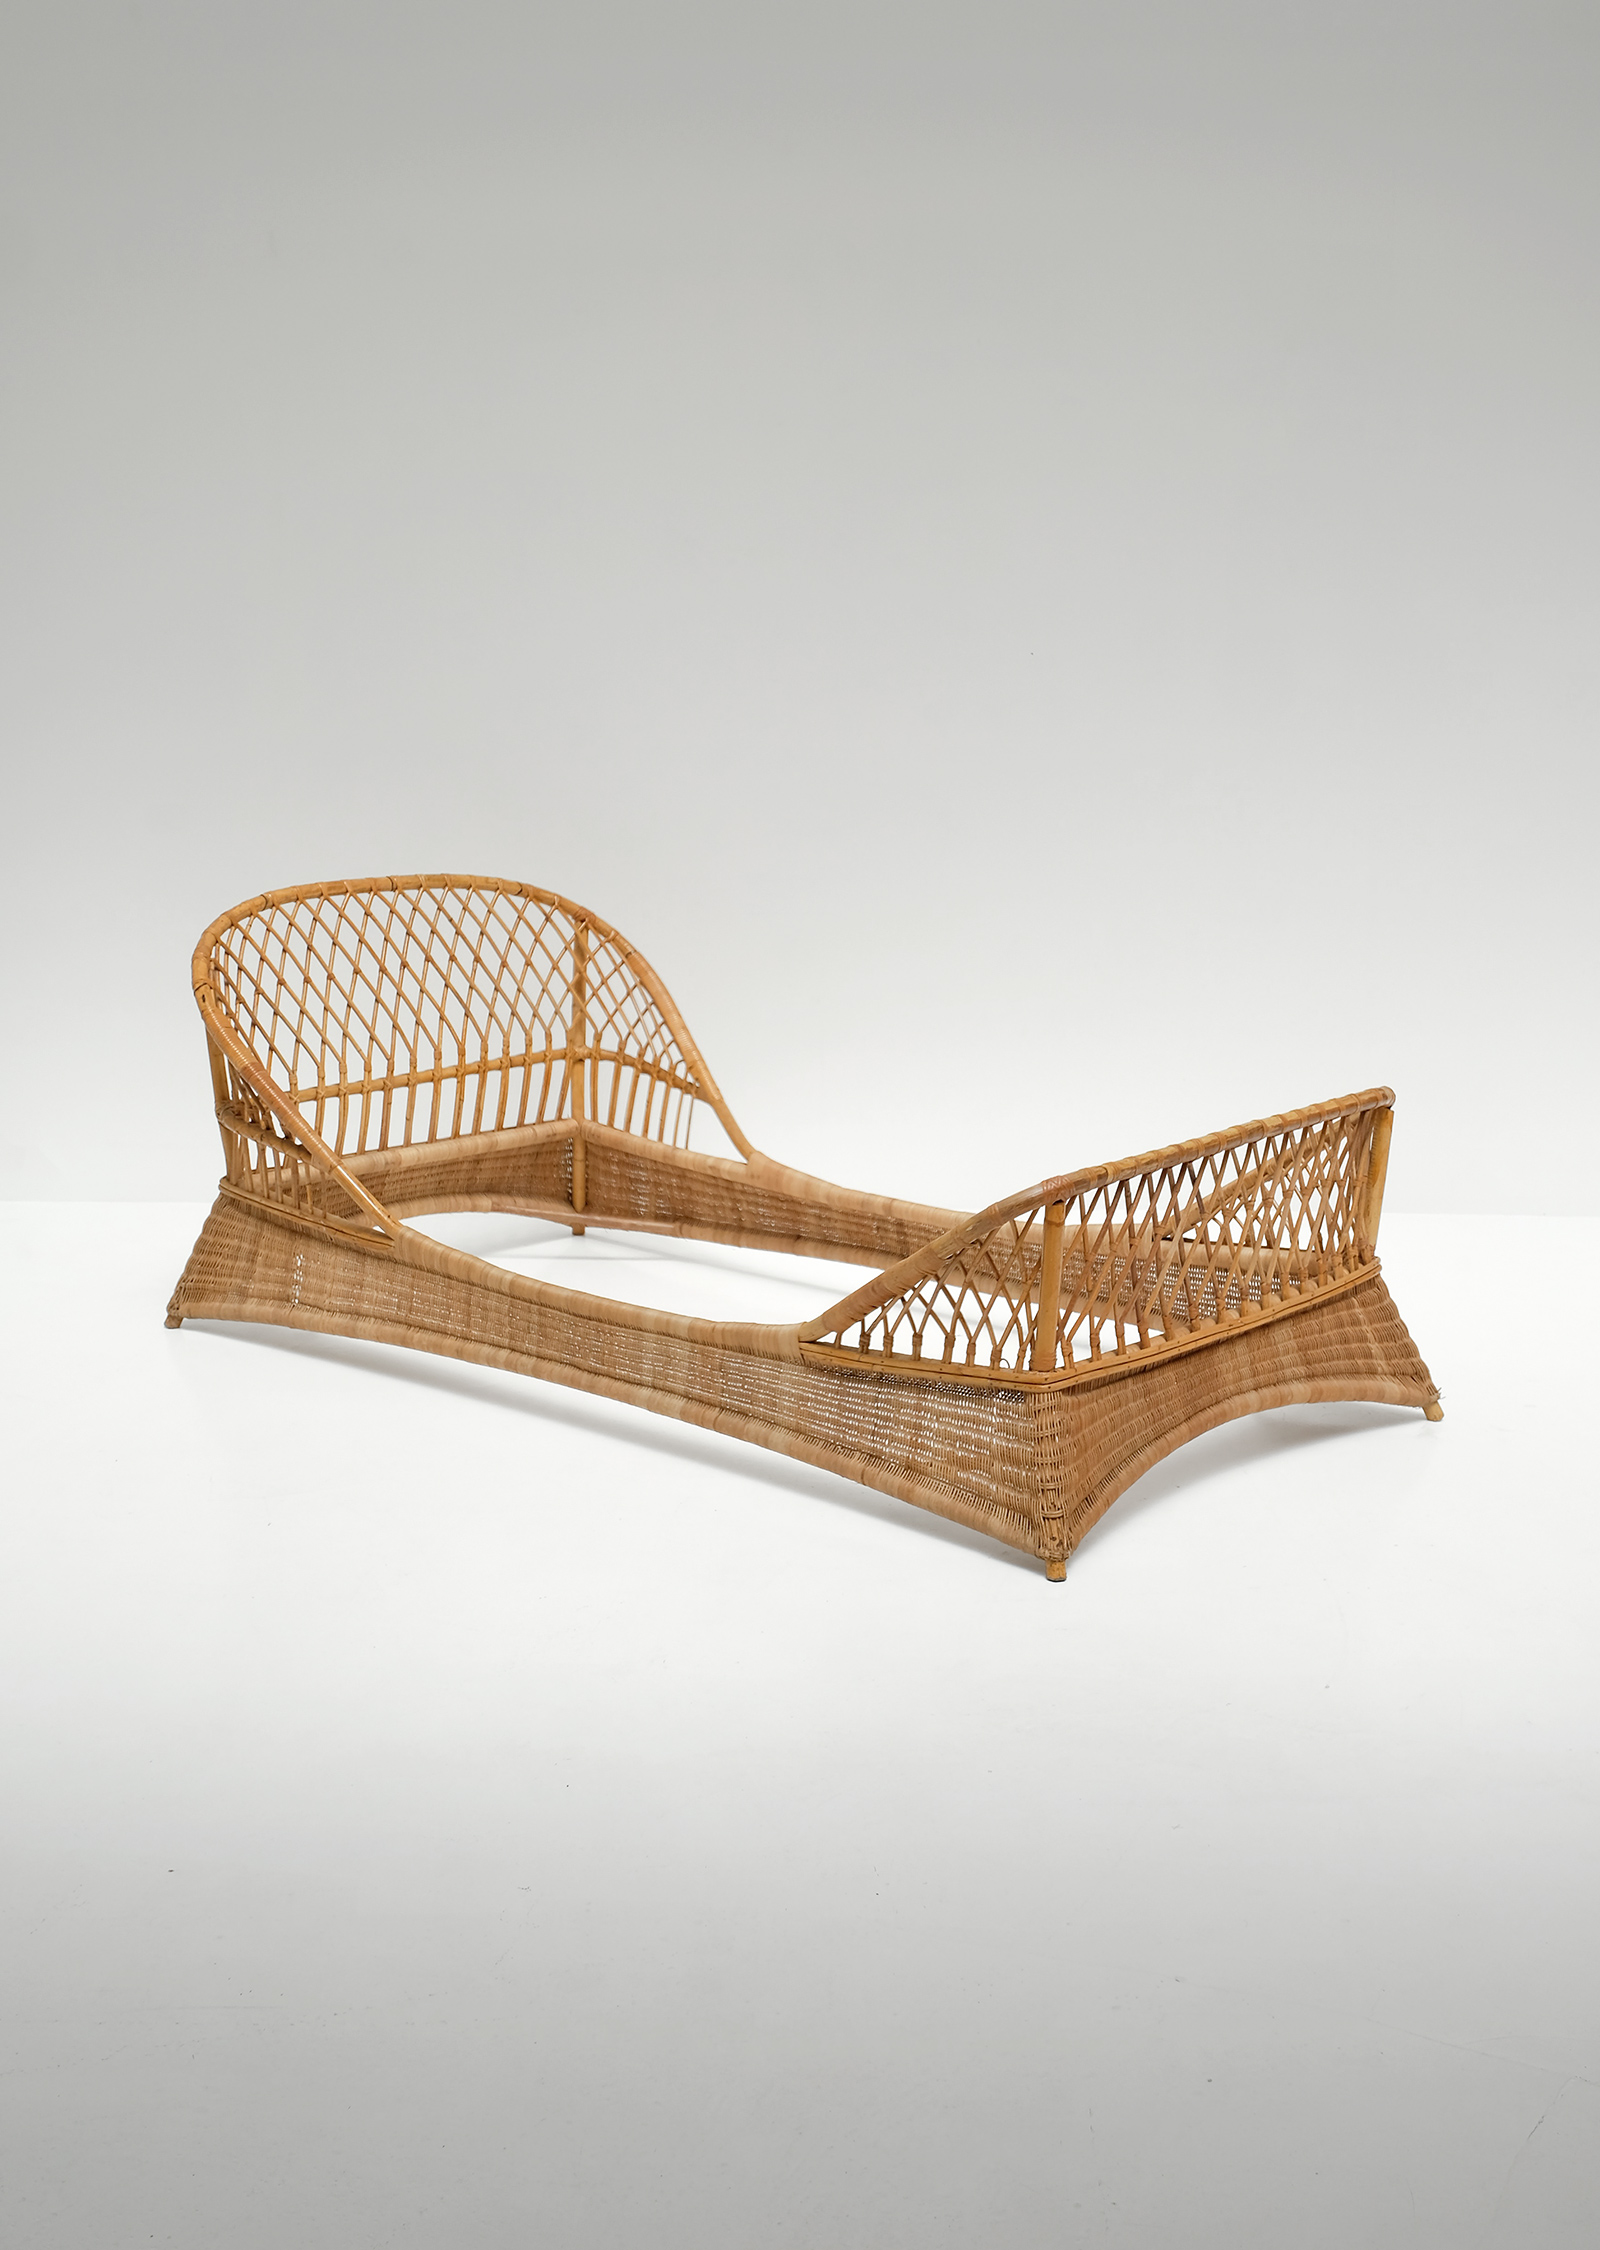 Two 1950s Rattan Daybedsimage 9